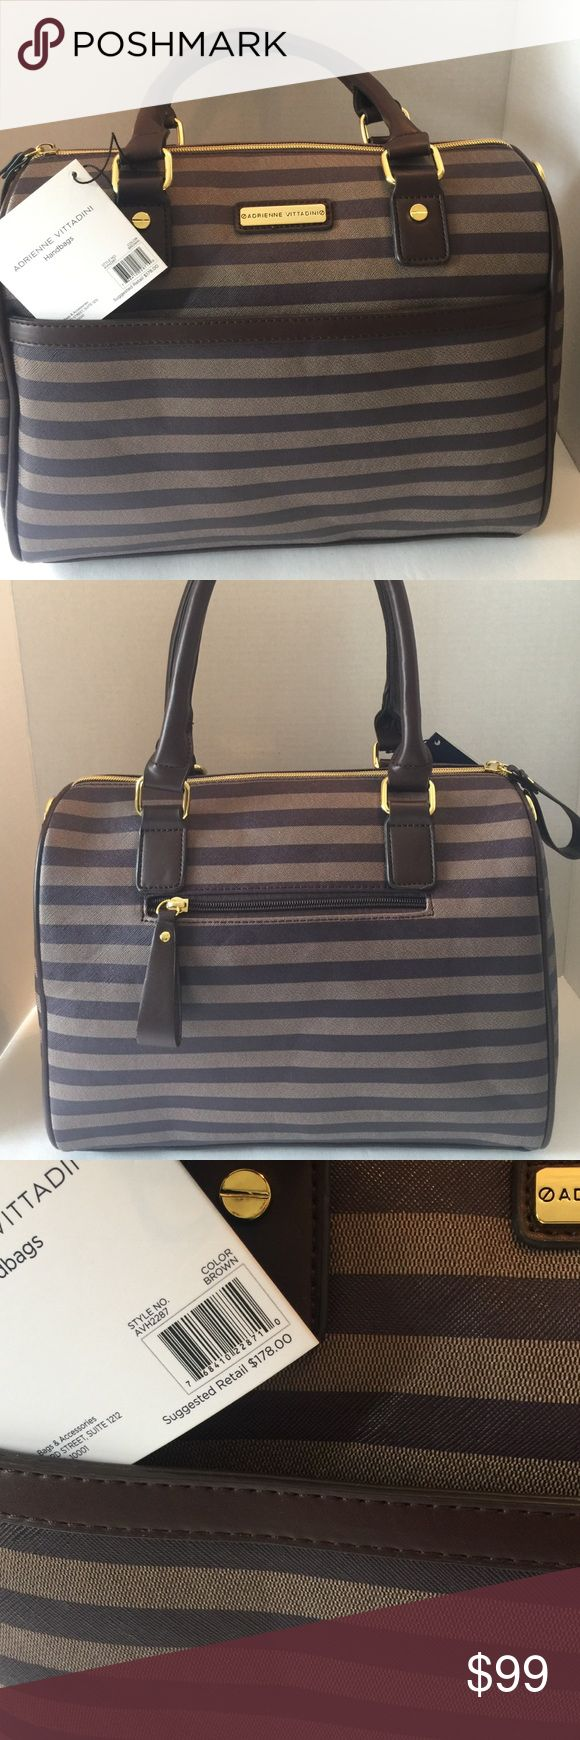 Adrienne Vittadini handbag Beautiful brown stripe handbag Adrienne Vittadini Bags Satchels